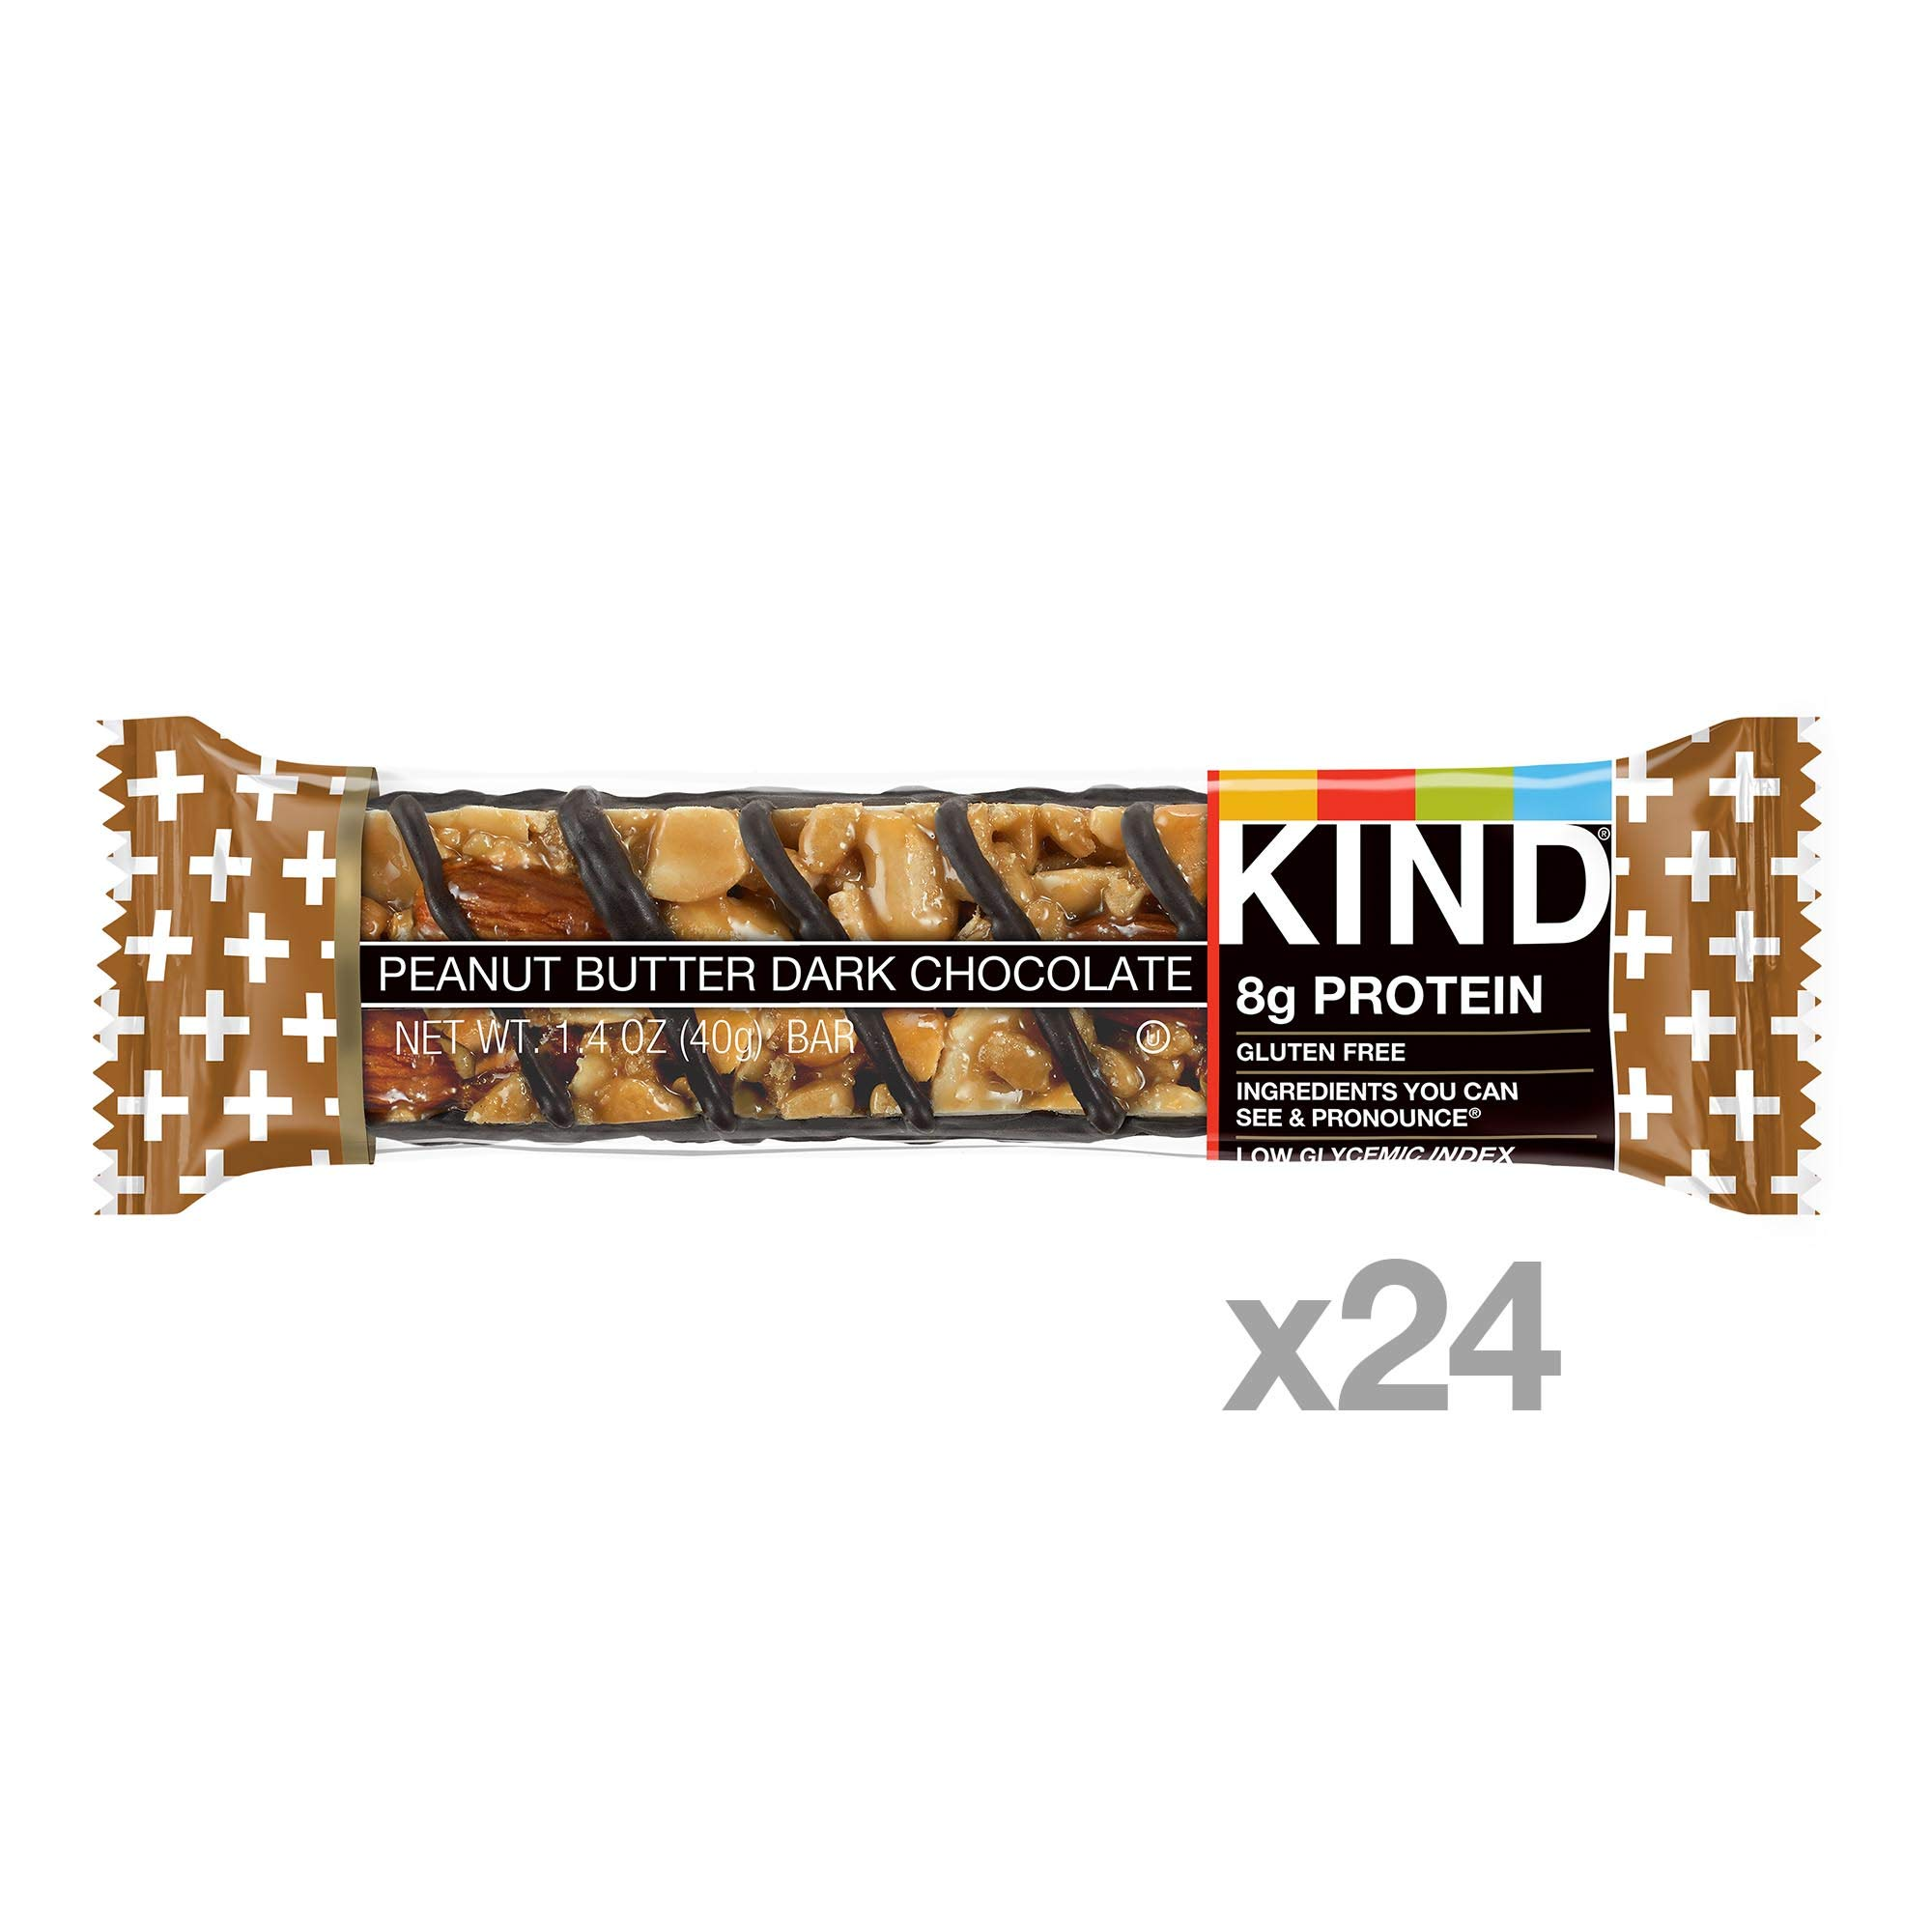 KIND Bars, Peanut Butter Dark Chocolate, 8g Protein, Gluten Free, 1.4 Ounce Bars, 24 Count by KIND (Image #2)